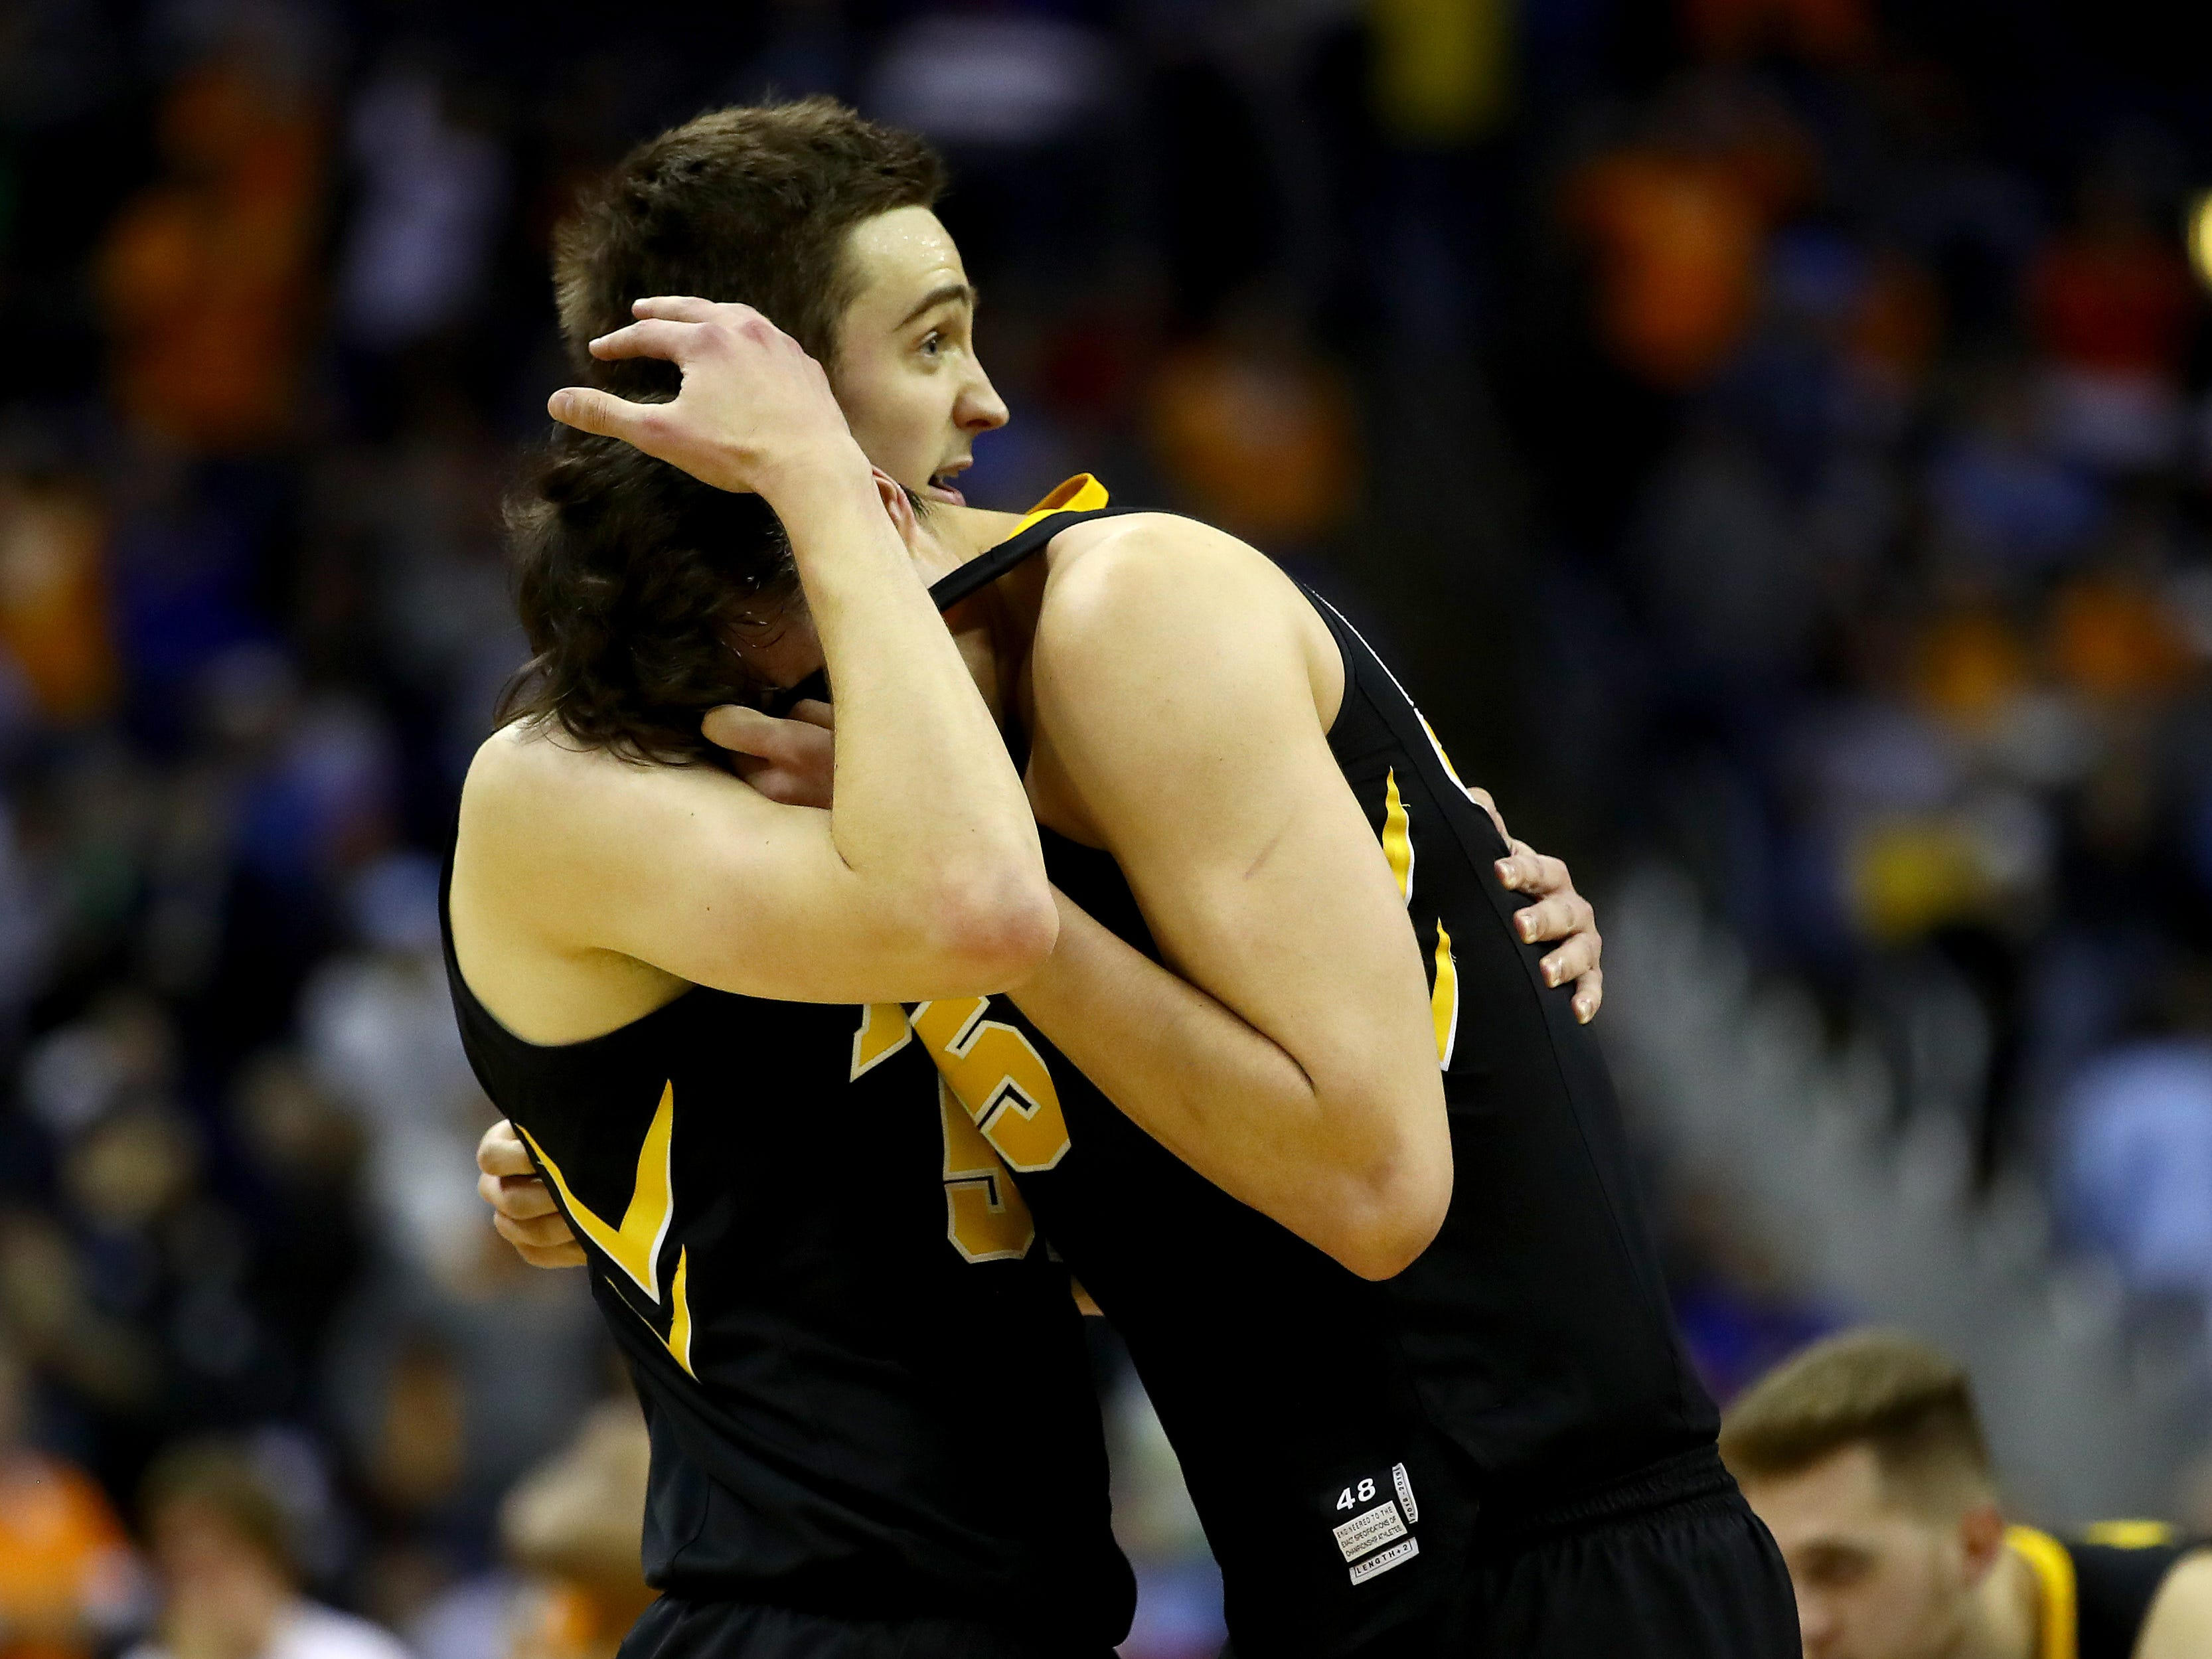 Iowa senior Nicholas Baer, left, and Luka Garza embrace following the Hawkeyes' 83-77 overtime loss to Tennessee.